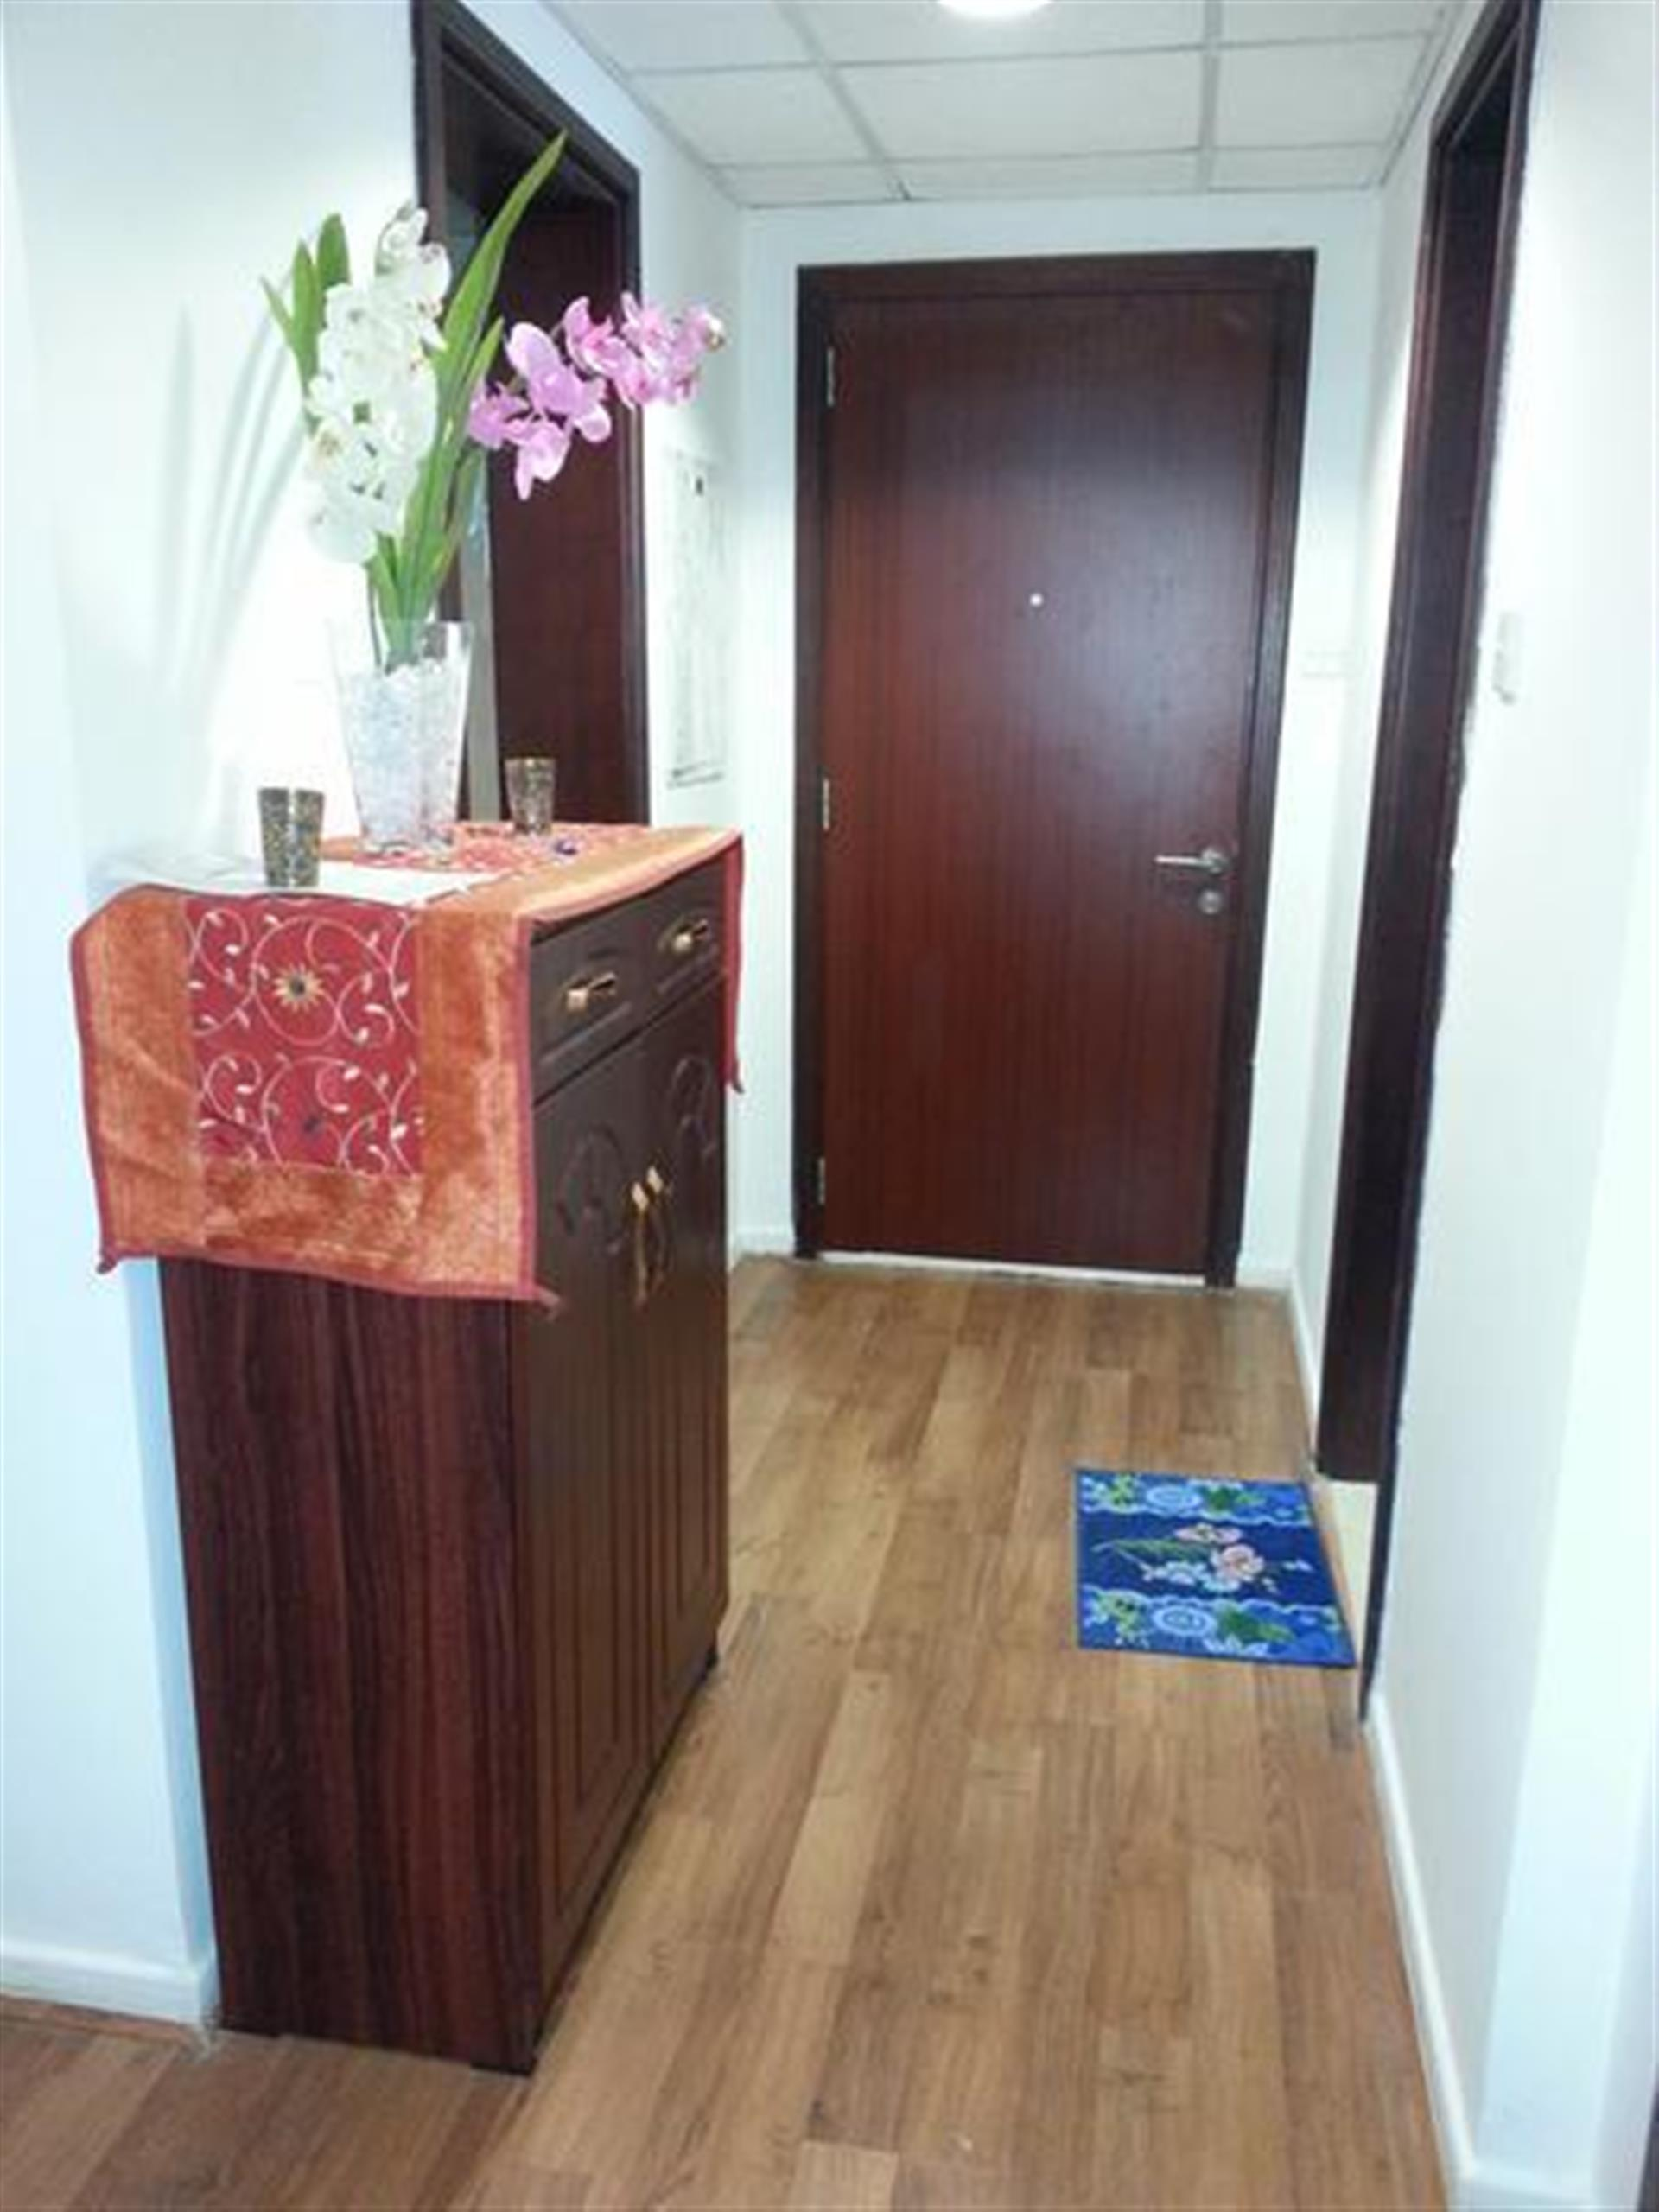 Property - Apartment for rent in International City- Dubai - Persia Cluster